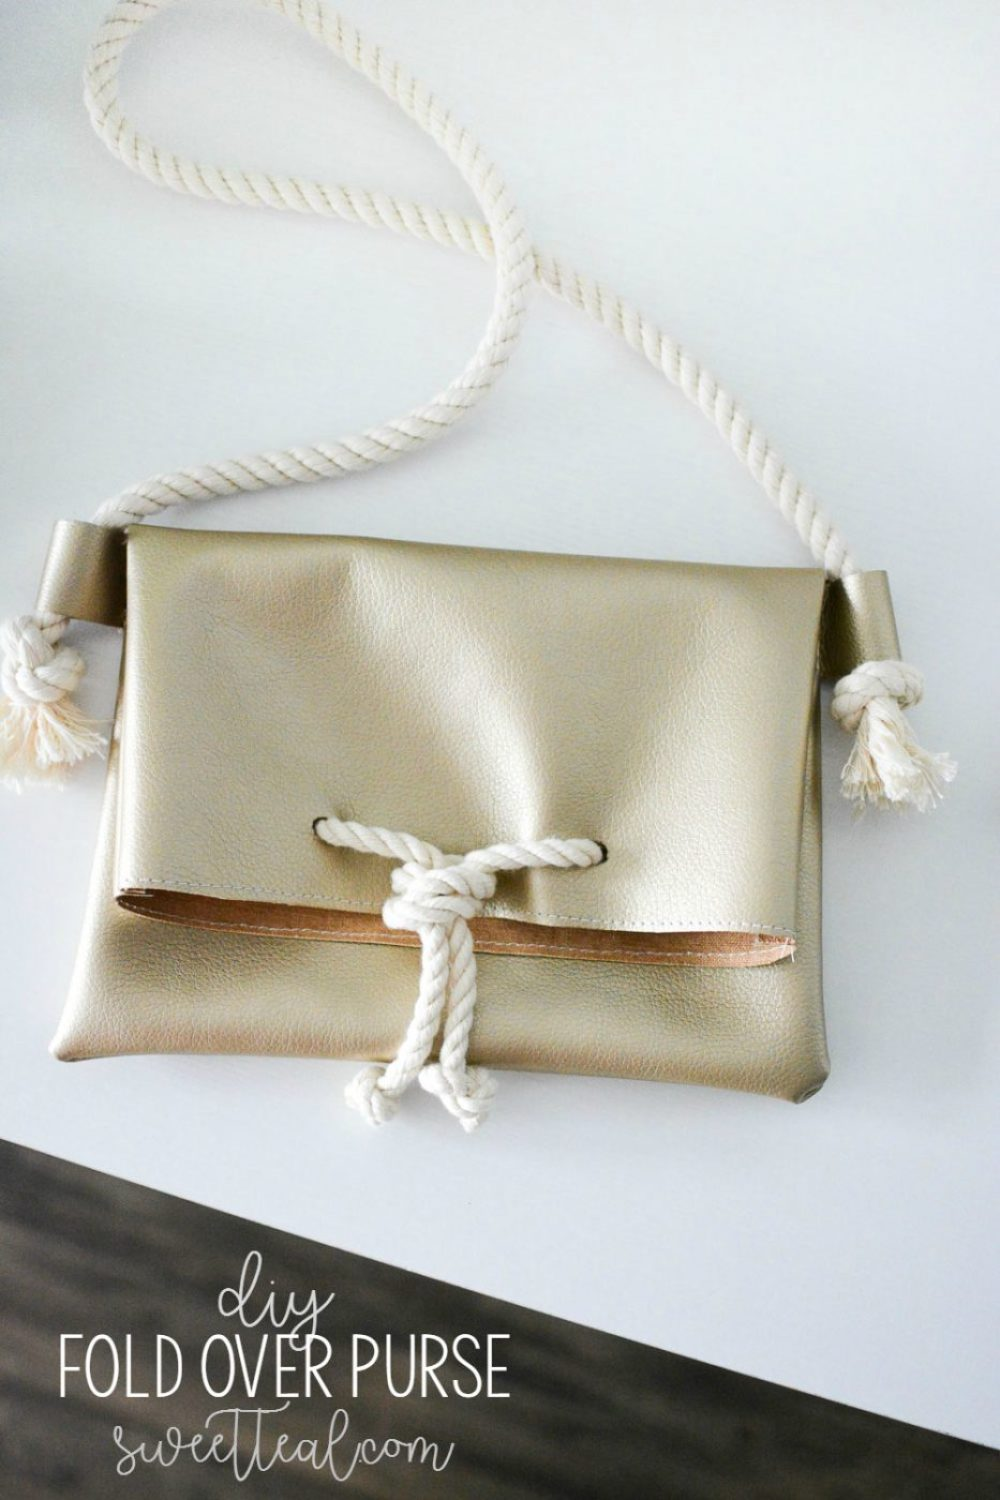 DIY Fold Over Purse Tutorial from Sweet Teal